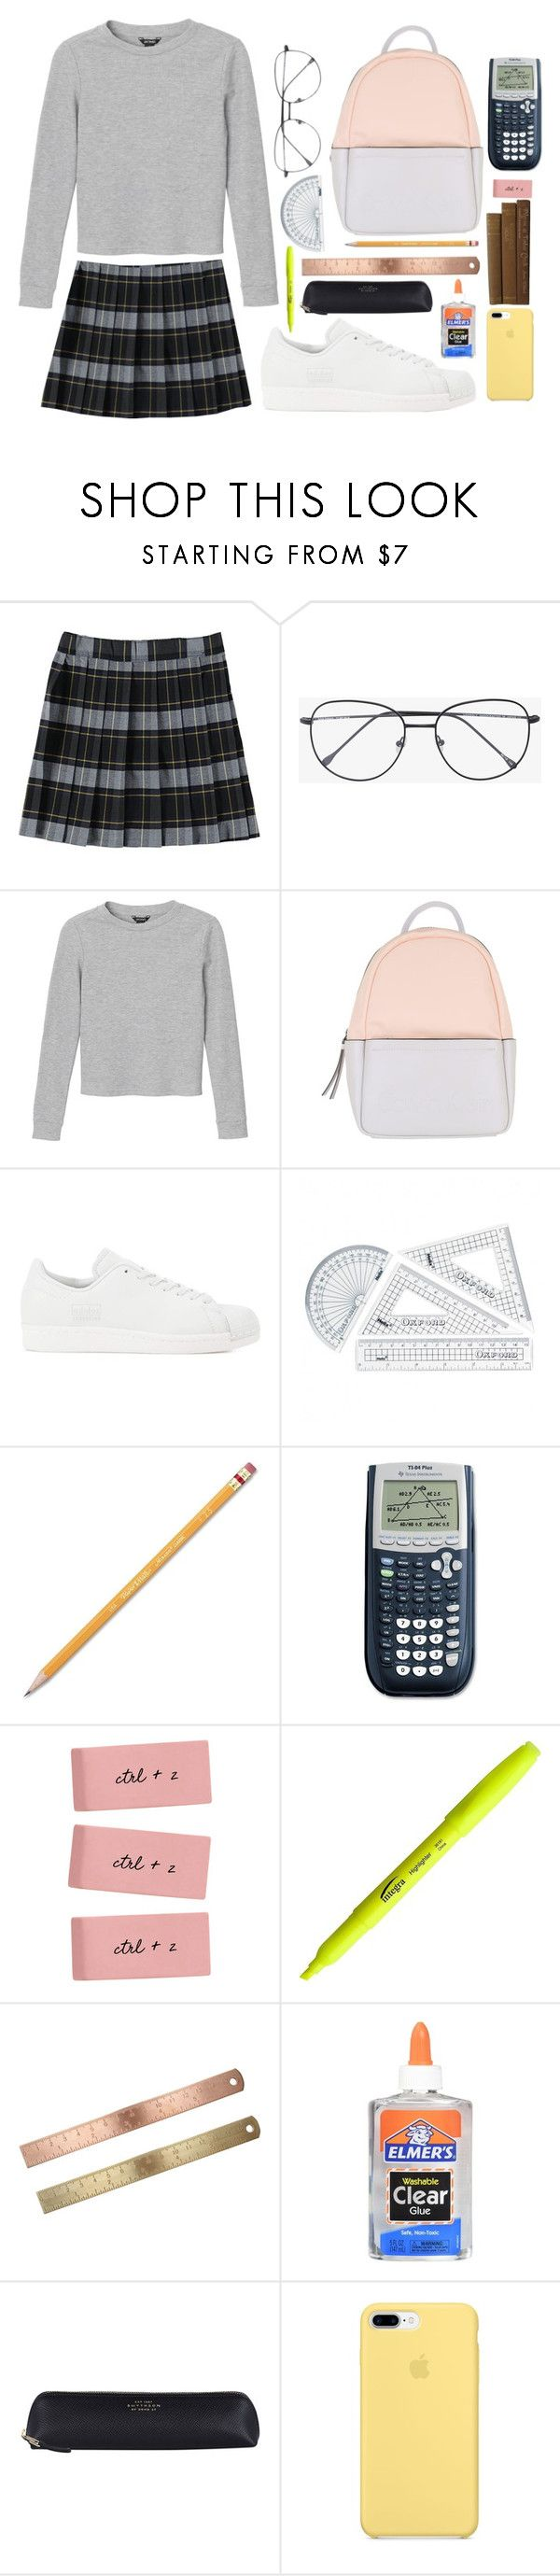 """""""Private school girl"""" by emily-2024099 ❤ liked on Polyvore featuring French Toast, Prism, Monki, Calvin Klein, adidas Originals, Paper Mate, Smythson, ja and chrislilley"""